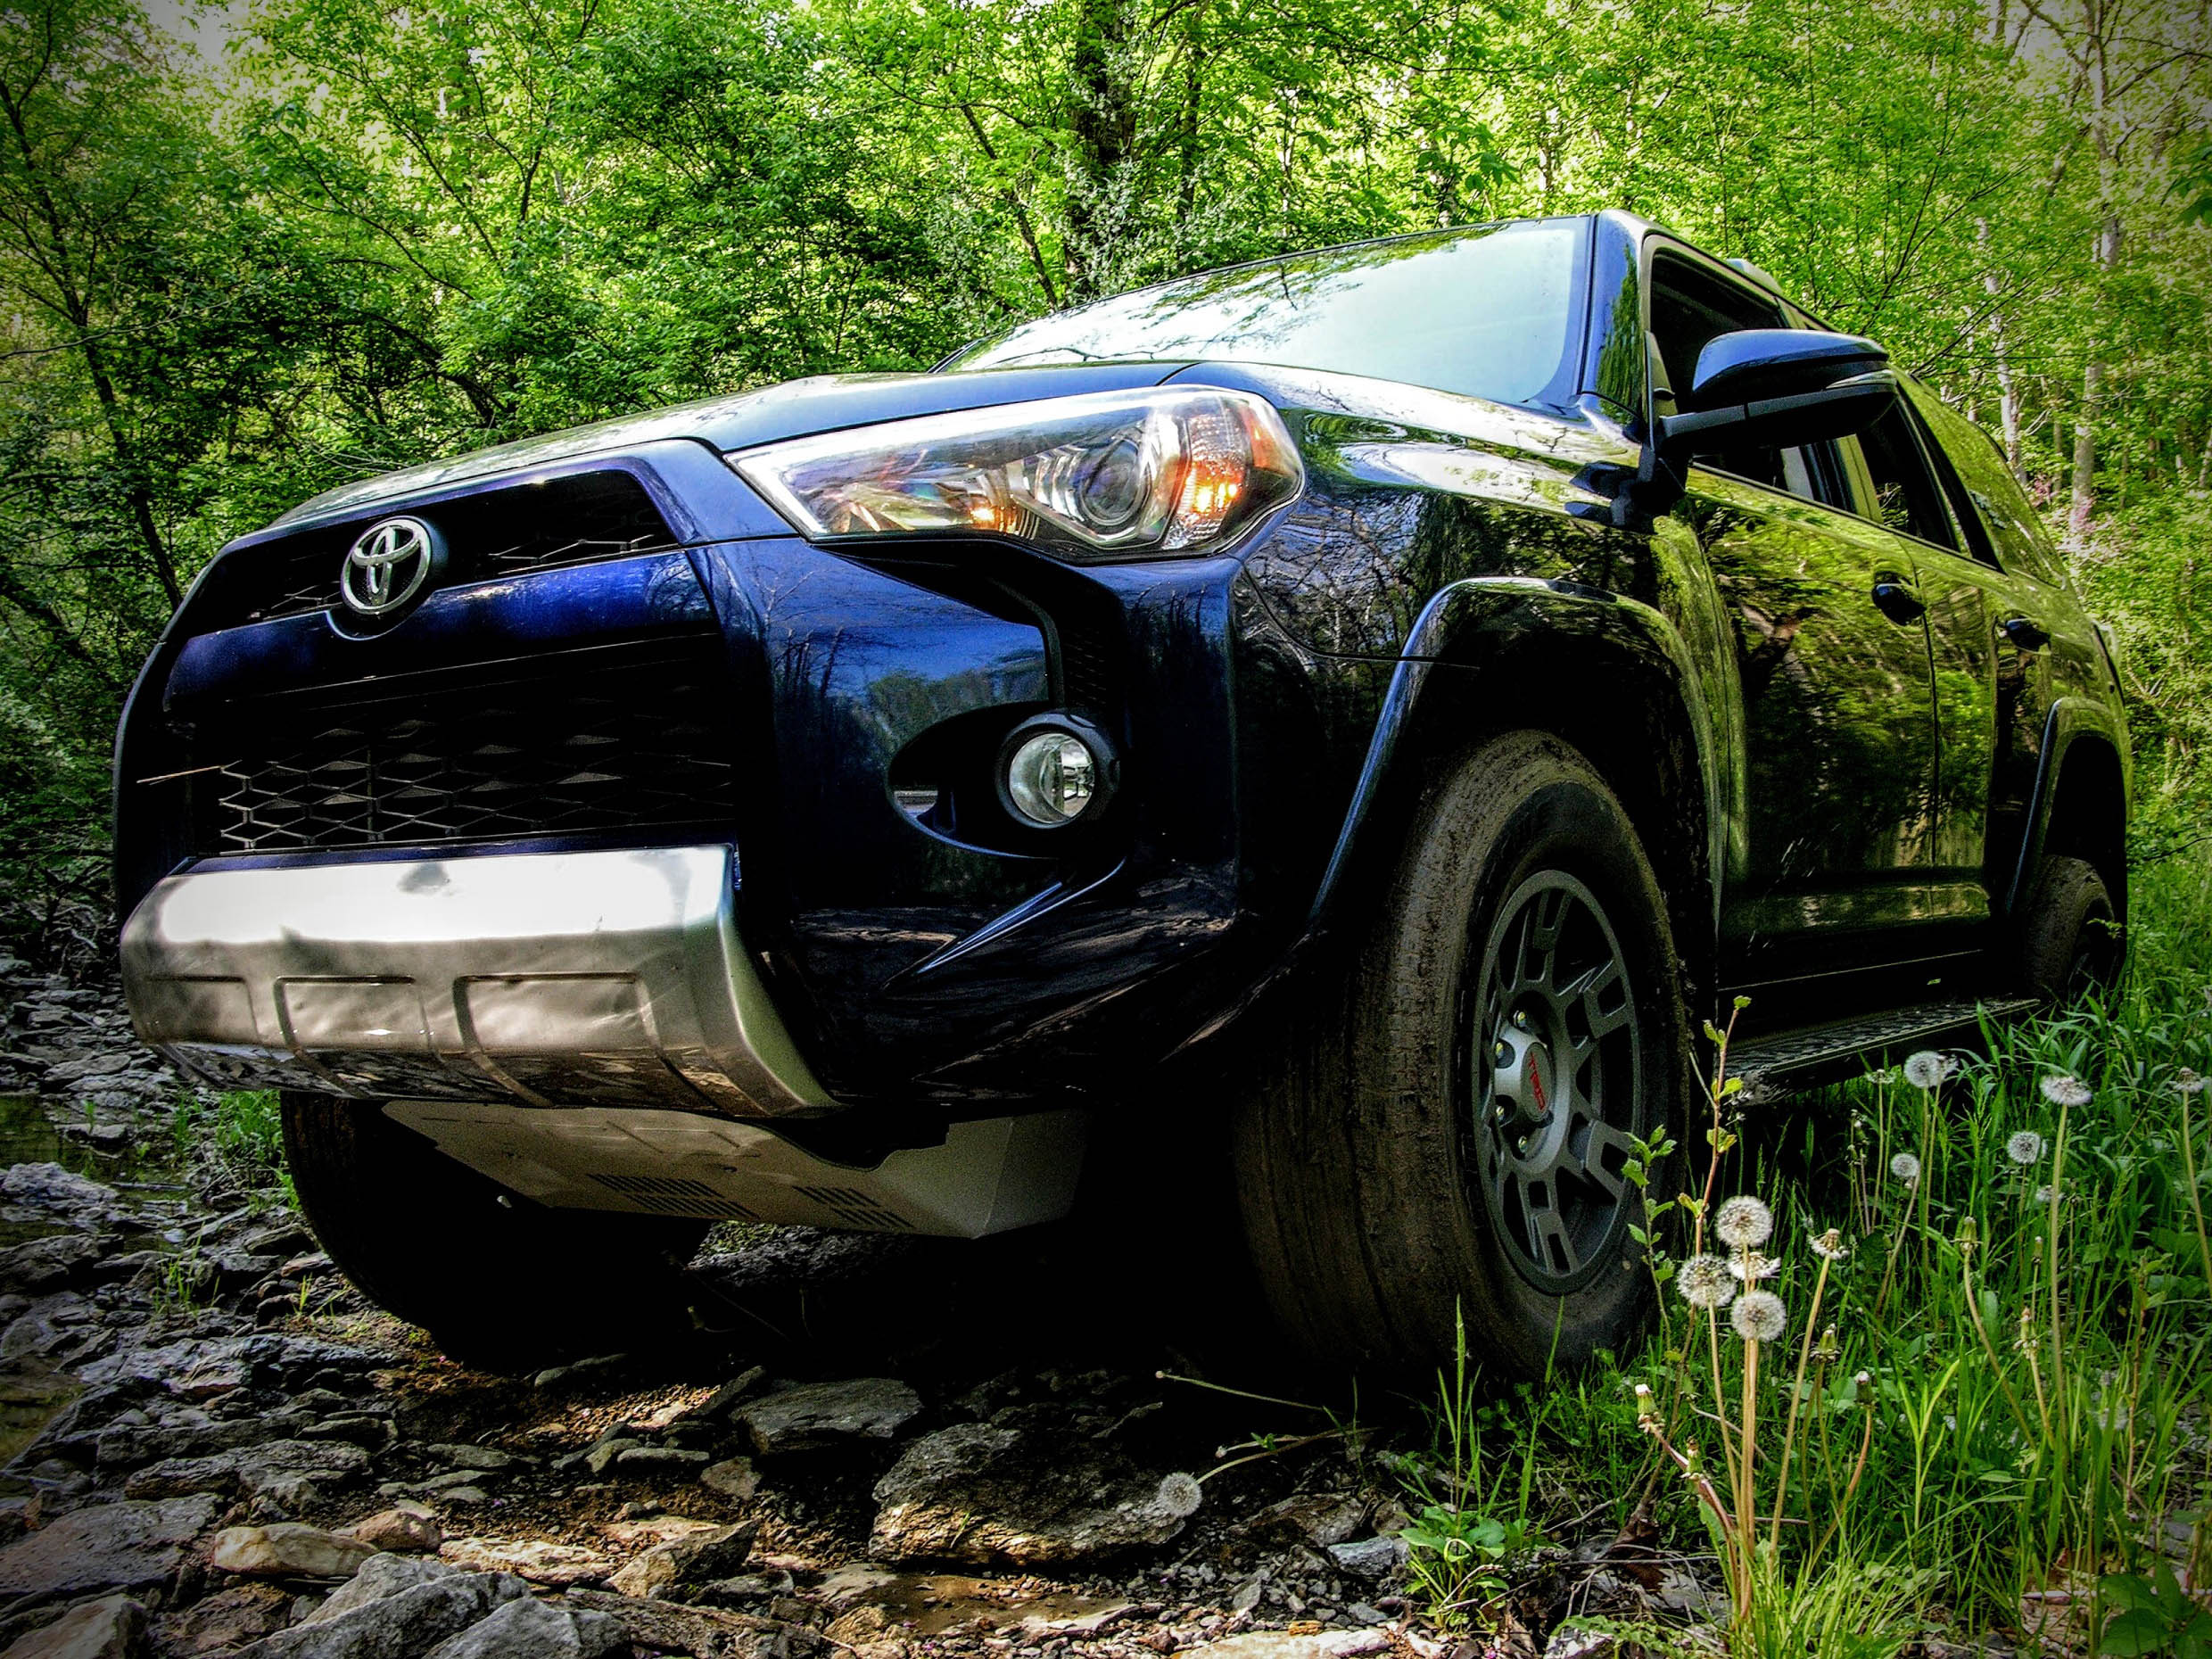 2018 Toyota 4Runner TRD Off-Road Premium Review: A 4×4 Classic